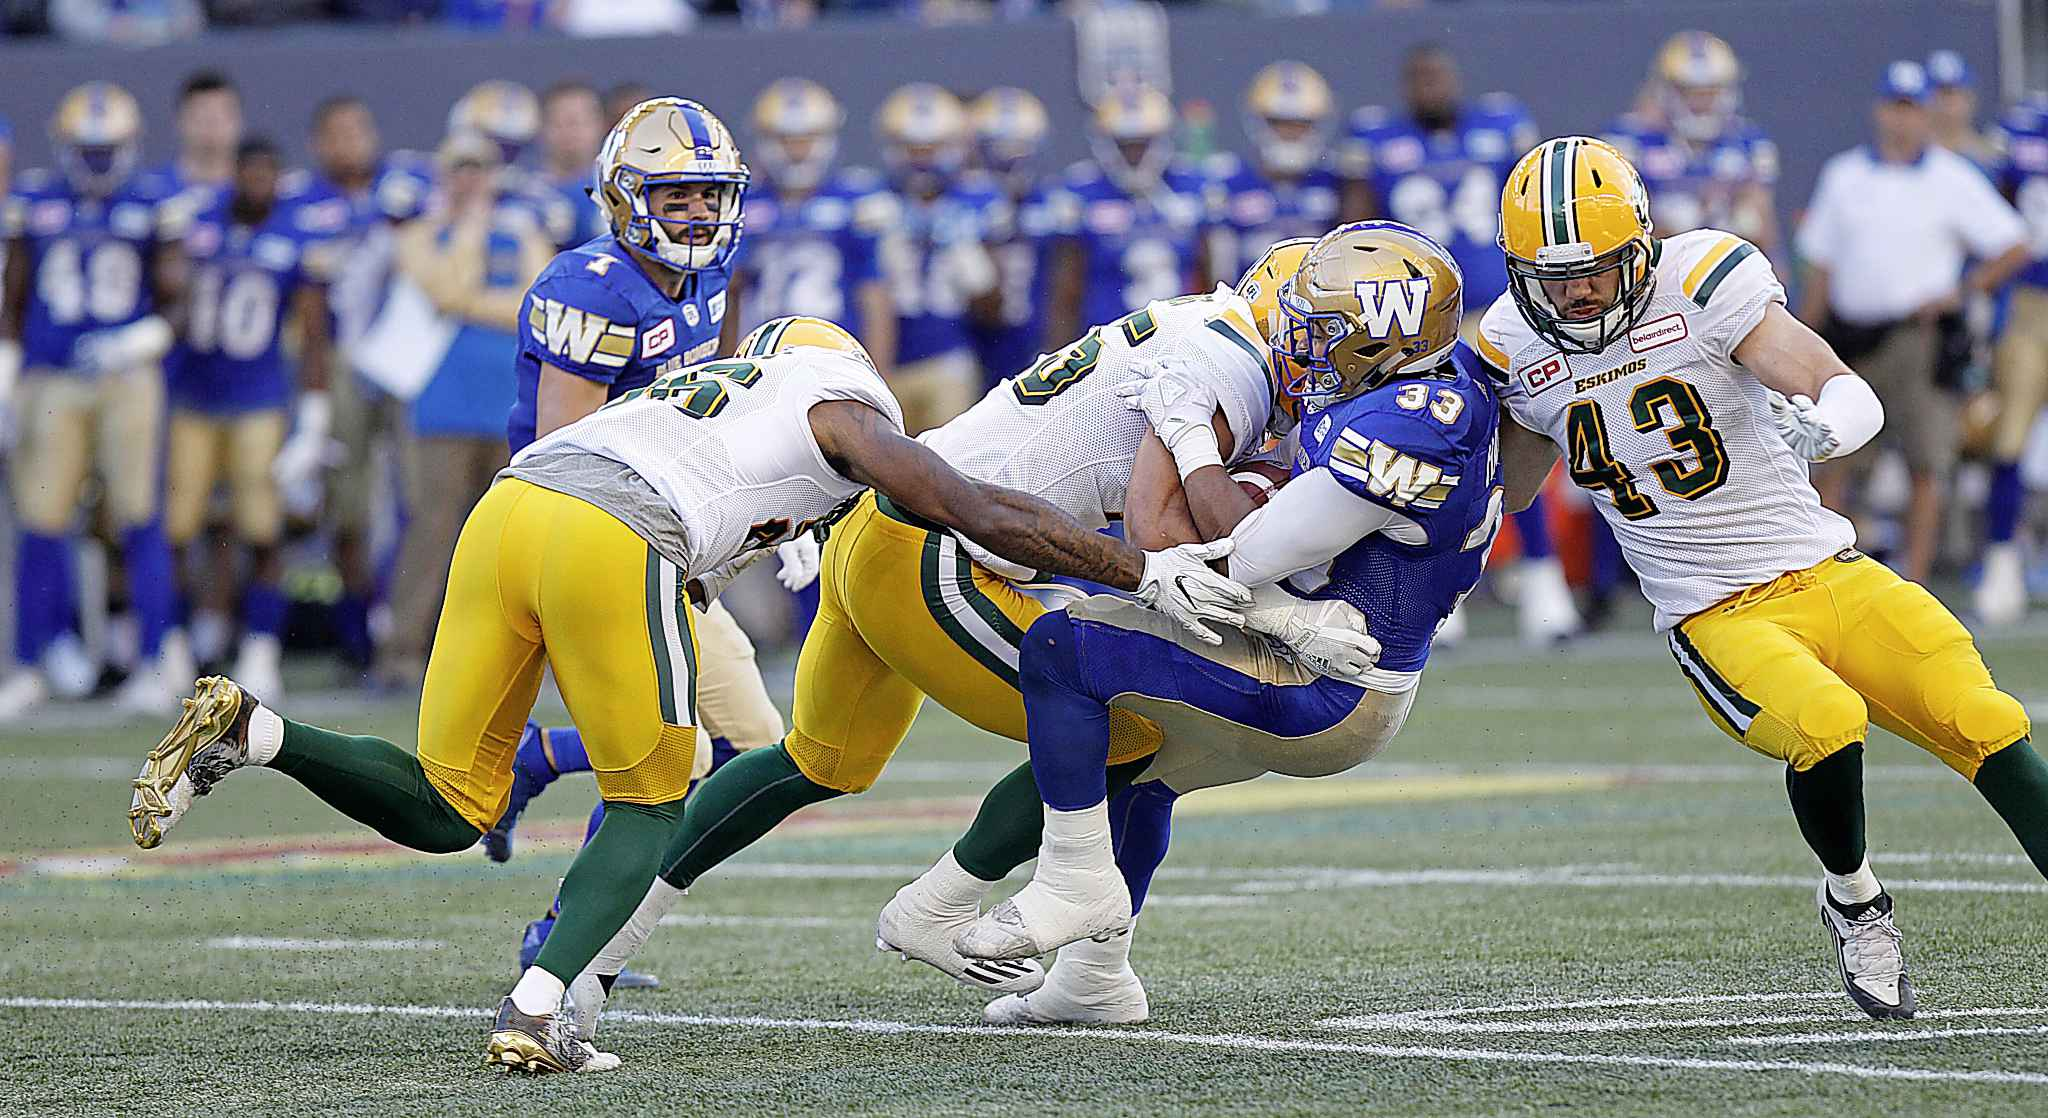 Winnipeg Blue Bombers' Andrew Harris goes down under a crowd of Edmonton Eskimos including Neil King, right.